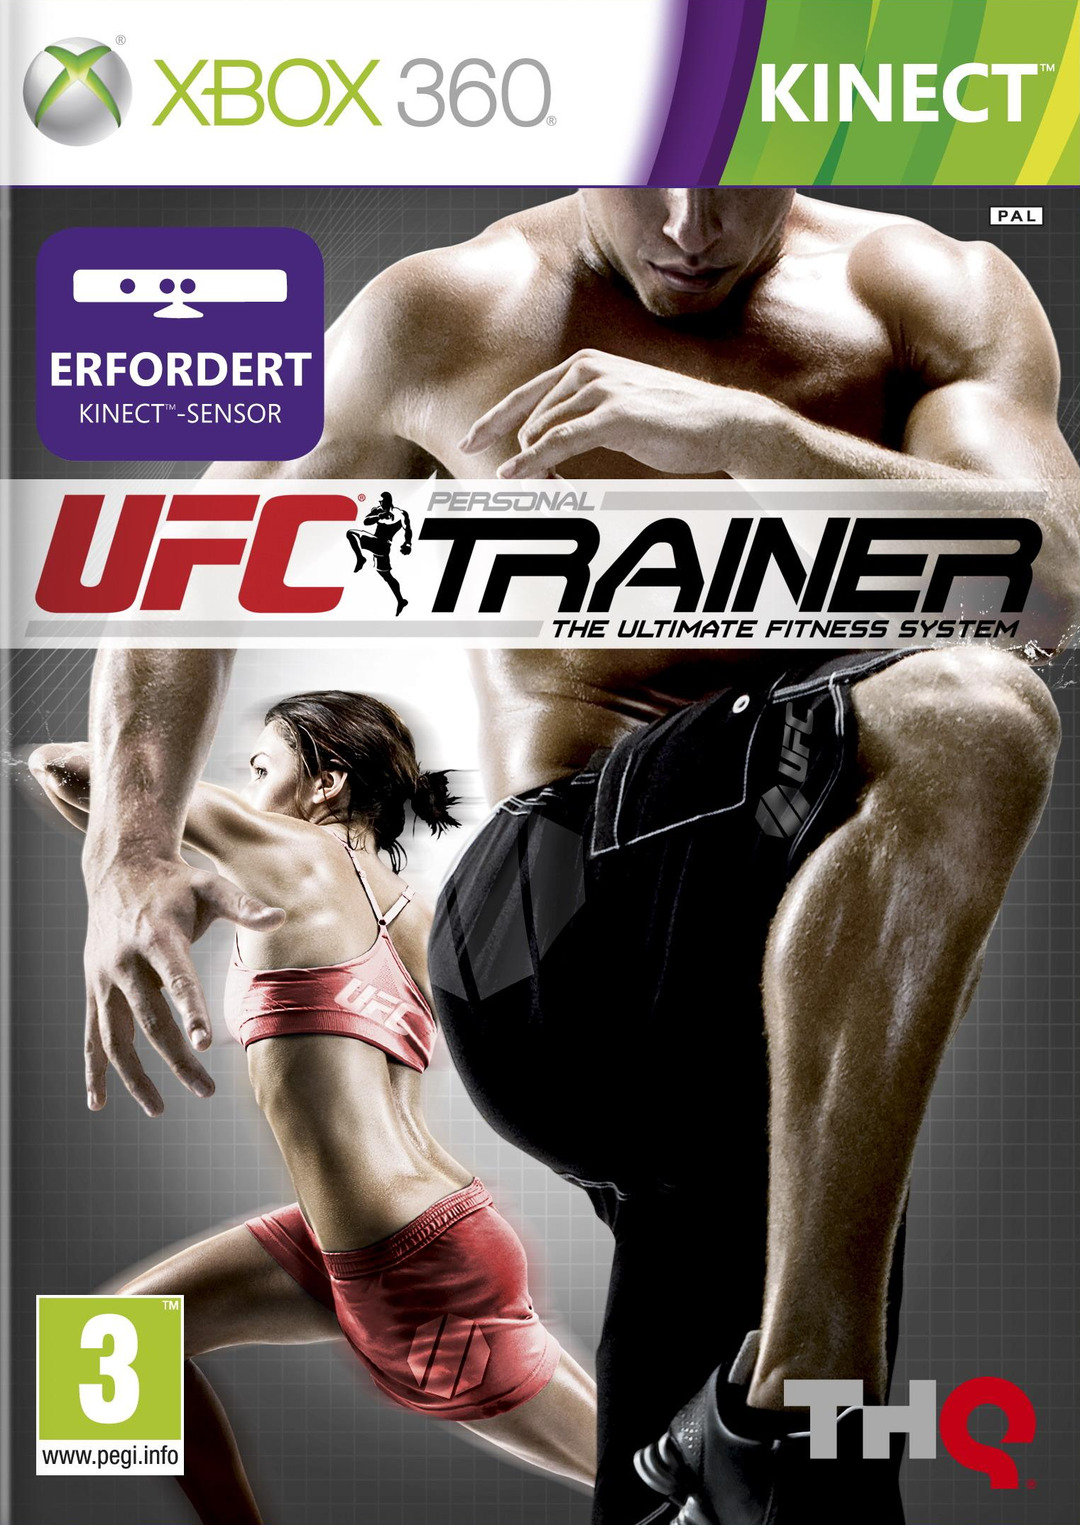 UFC Personal Trainer : The Ultimate Fitness System [XBOX 360] [FREE] [US]